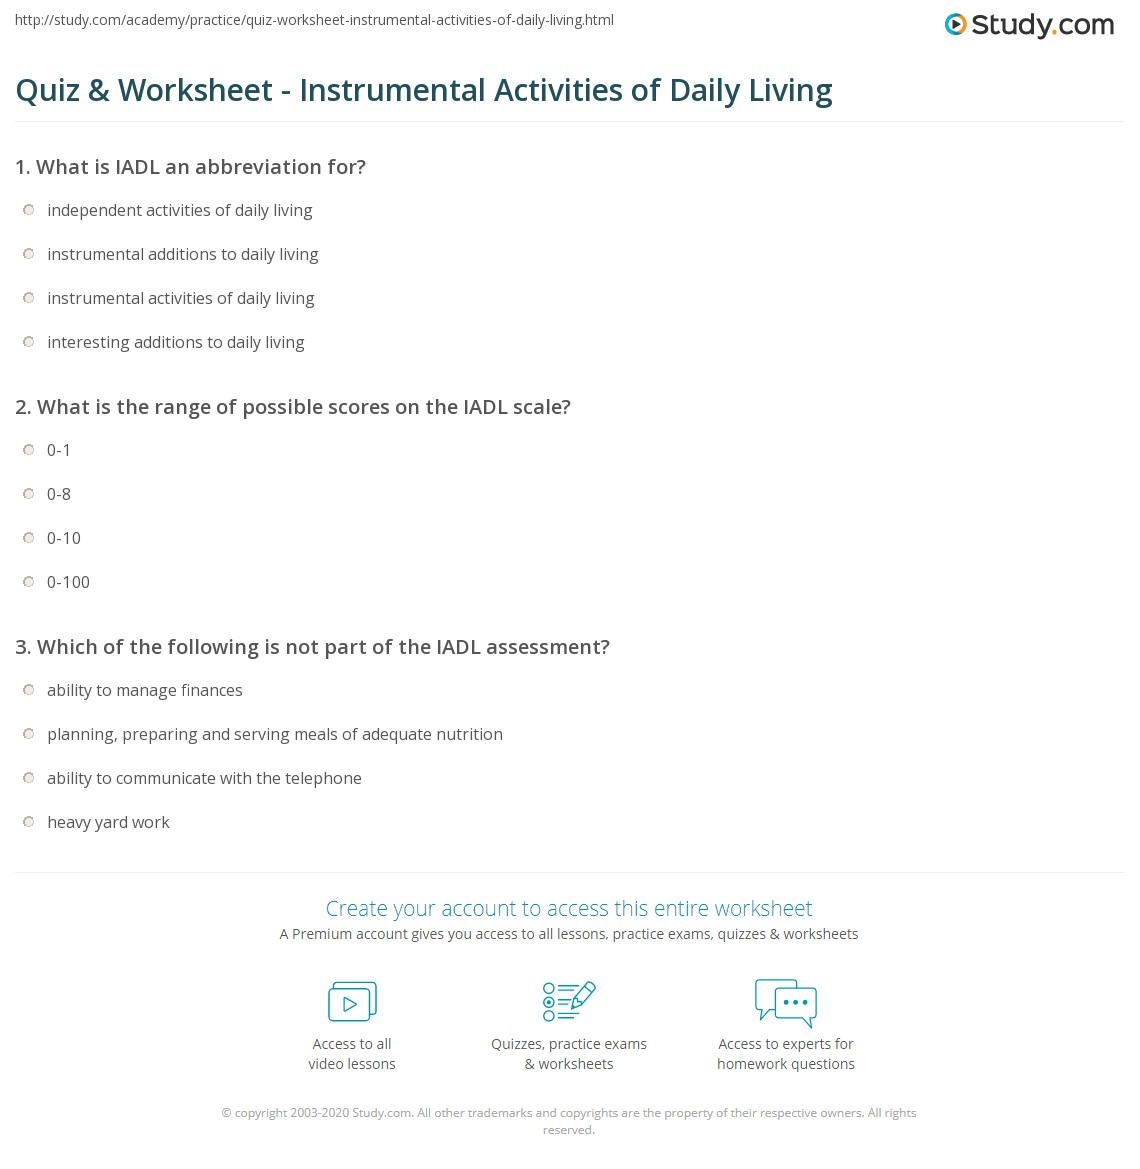 Printables Activities Of Daily Living Worksheets quiz worksheet instrumental activities of daily living study com print iadl definition scale worksheet